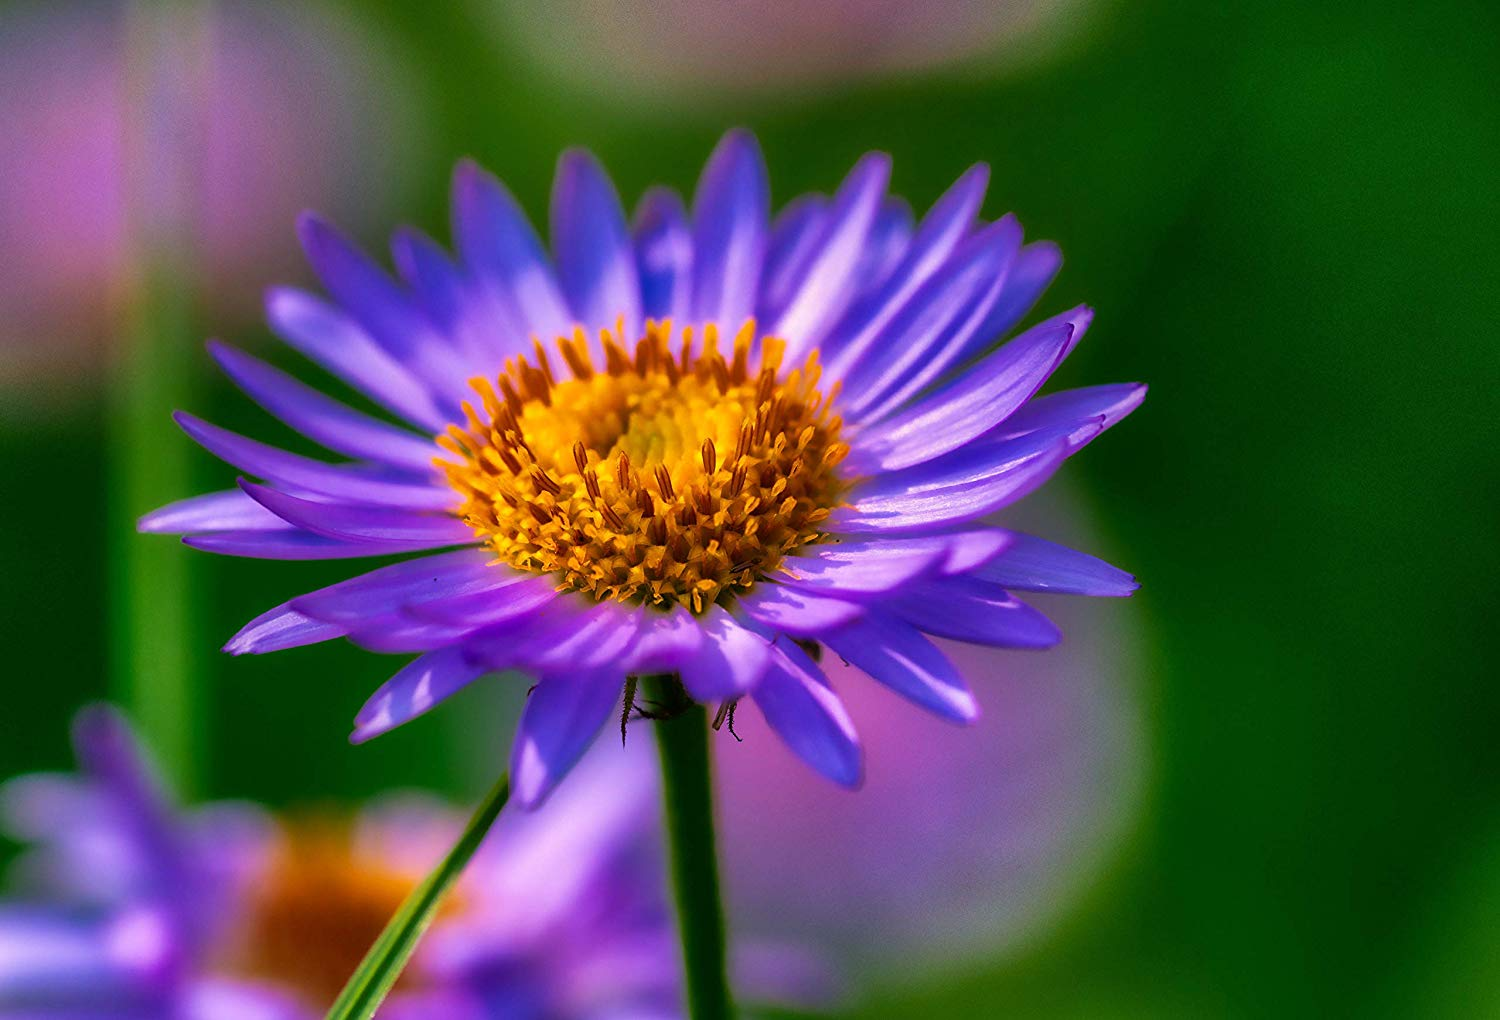 This Fine Art Color Landscape Photo of a purple daisy in the Wyoming Mountains is Available in Print Sizes up to 44x66 inches is Perfect for Home or Office Decoration, Wall Art, Wall Décor